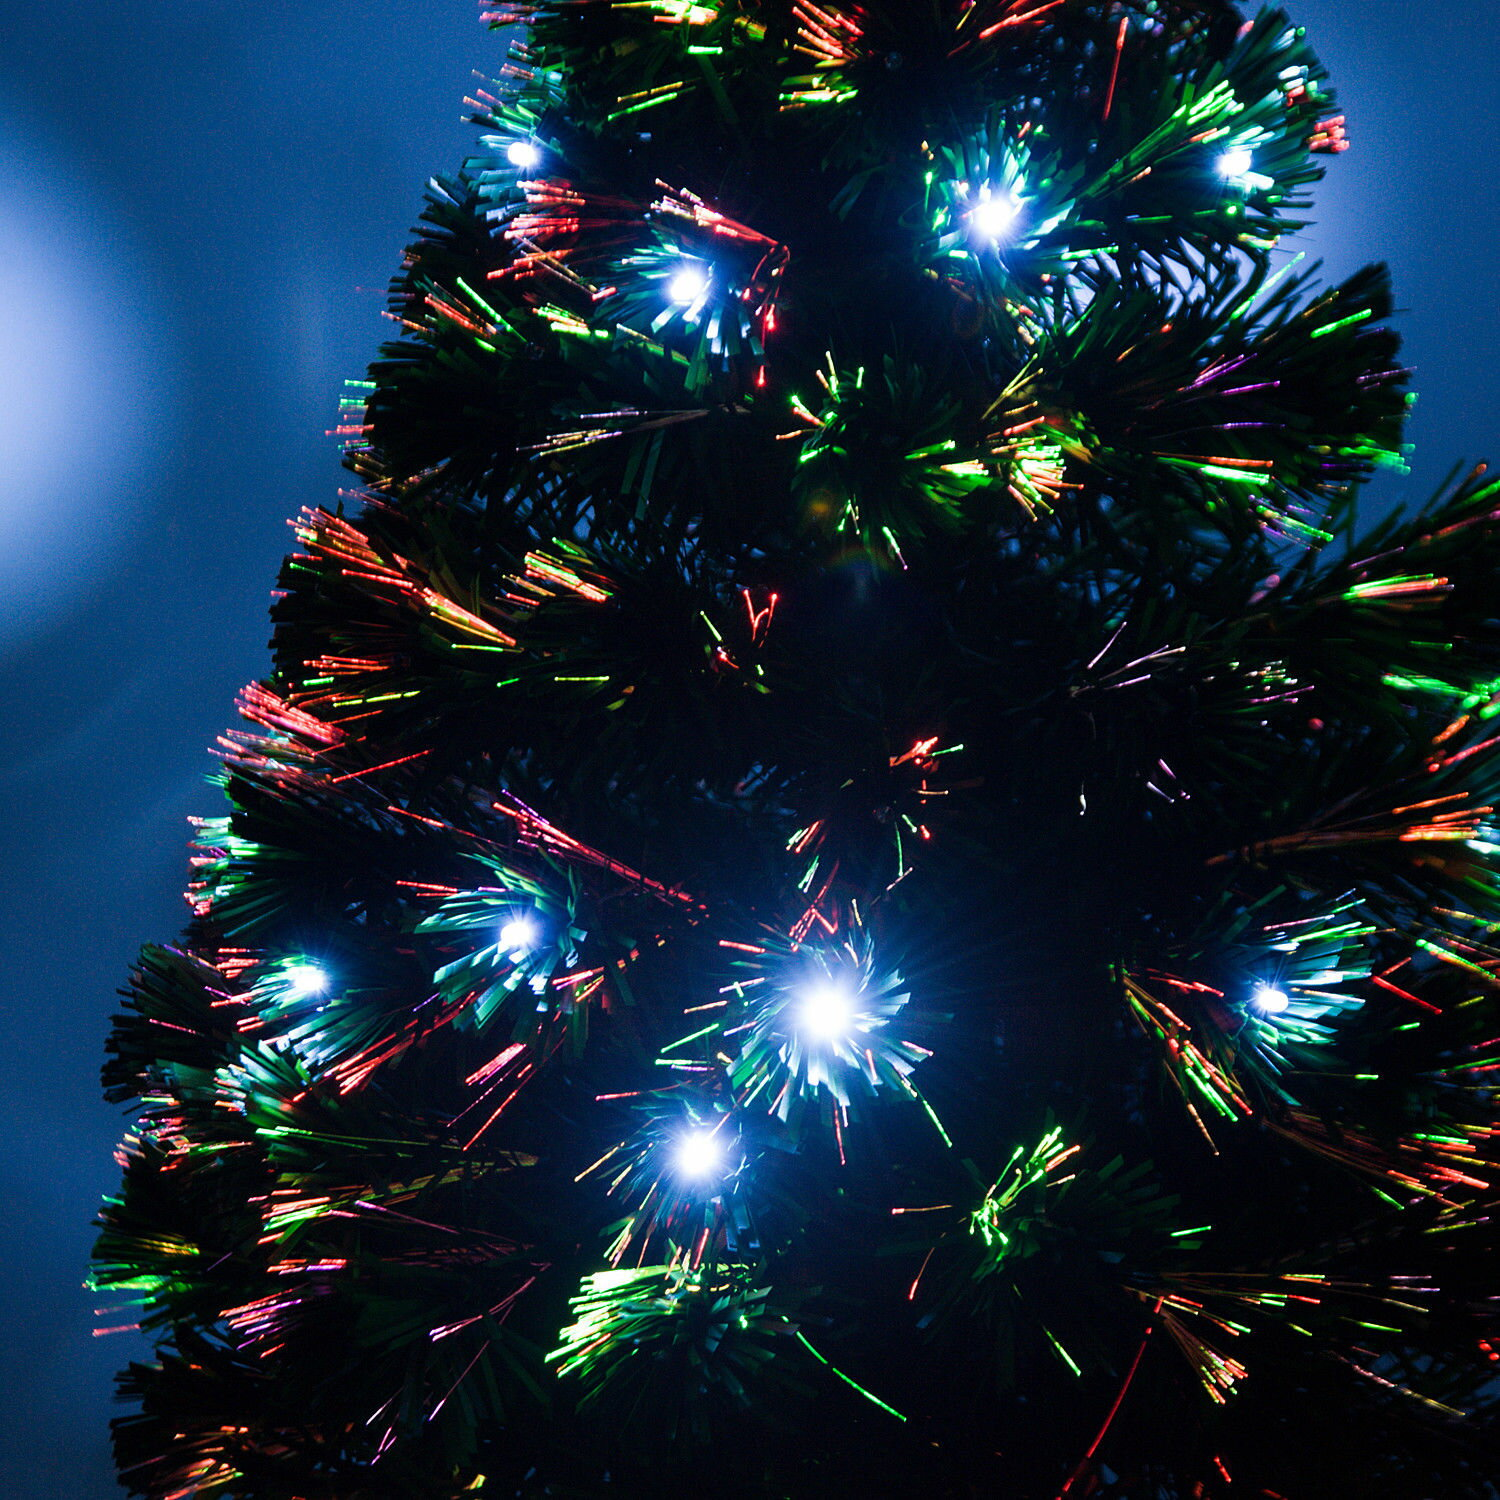 3' Artificial Fiber Optic / LED Light Up Christmas Tree w/ 8 Light Settings and Stand 4